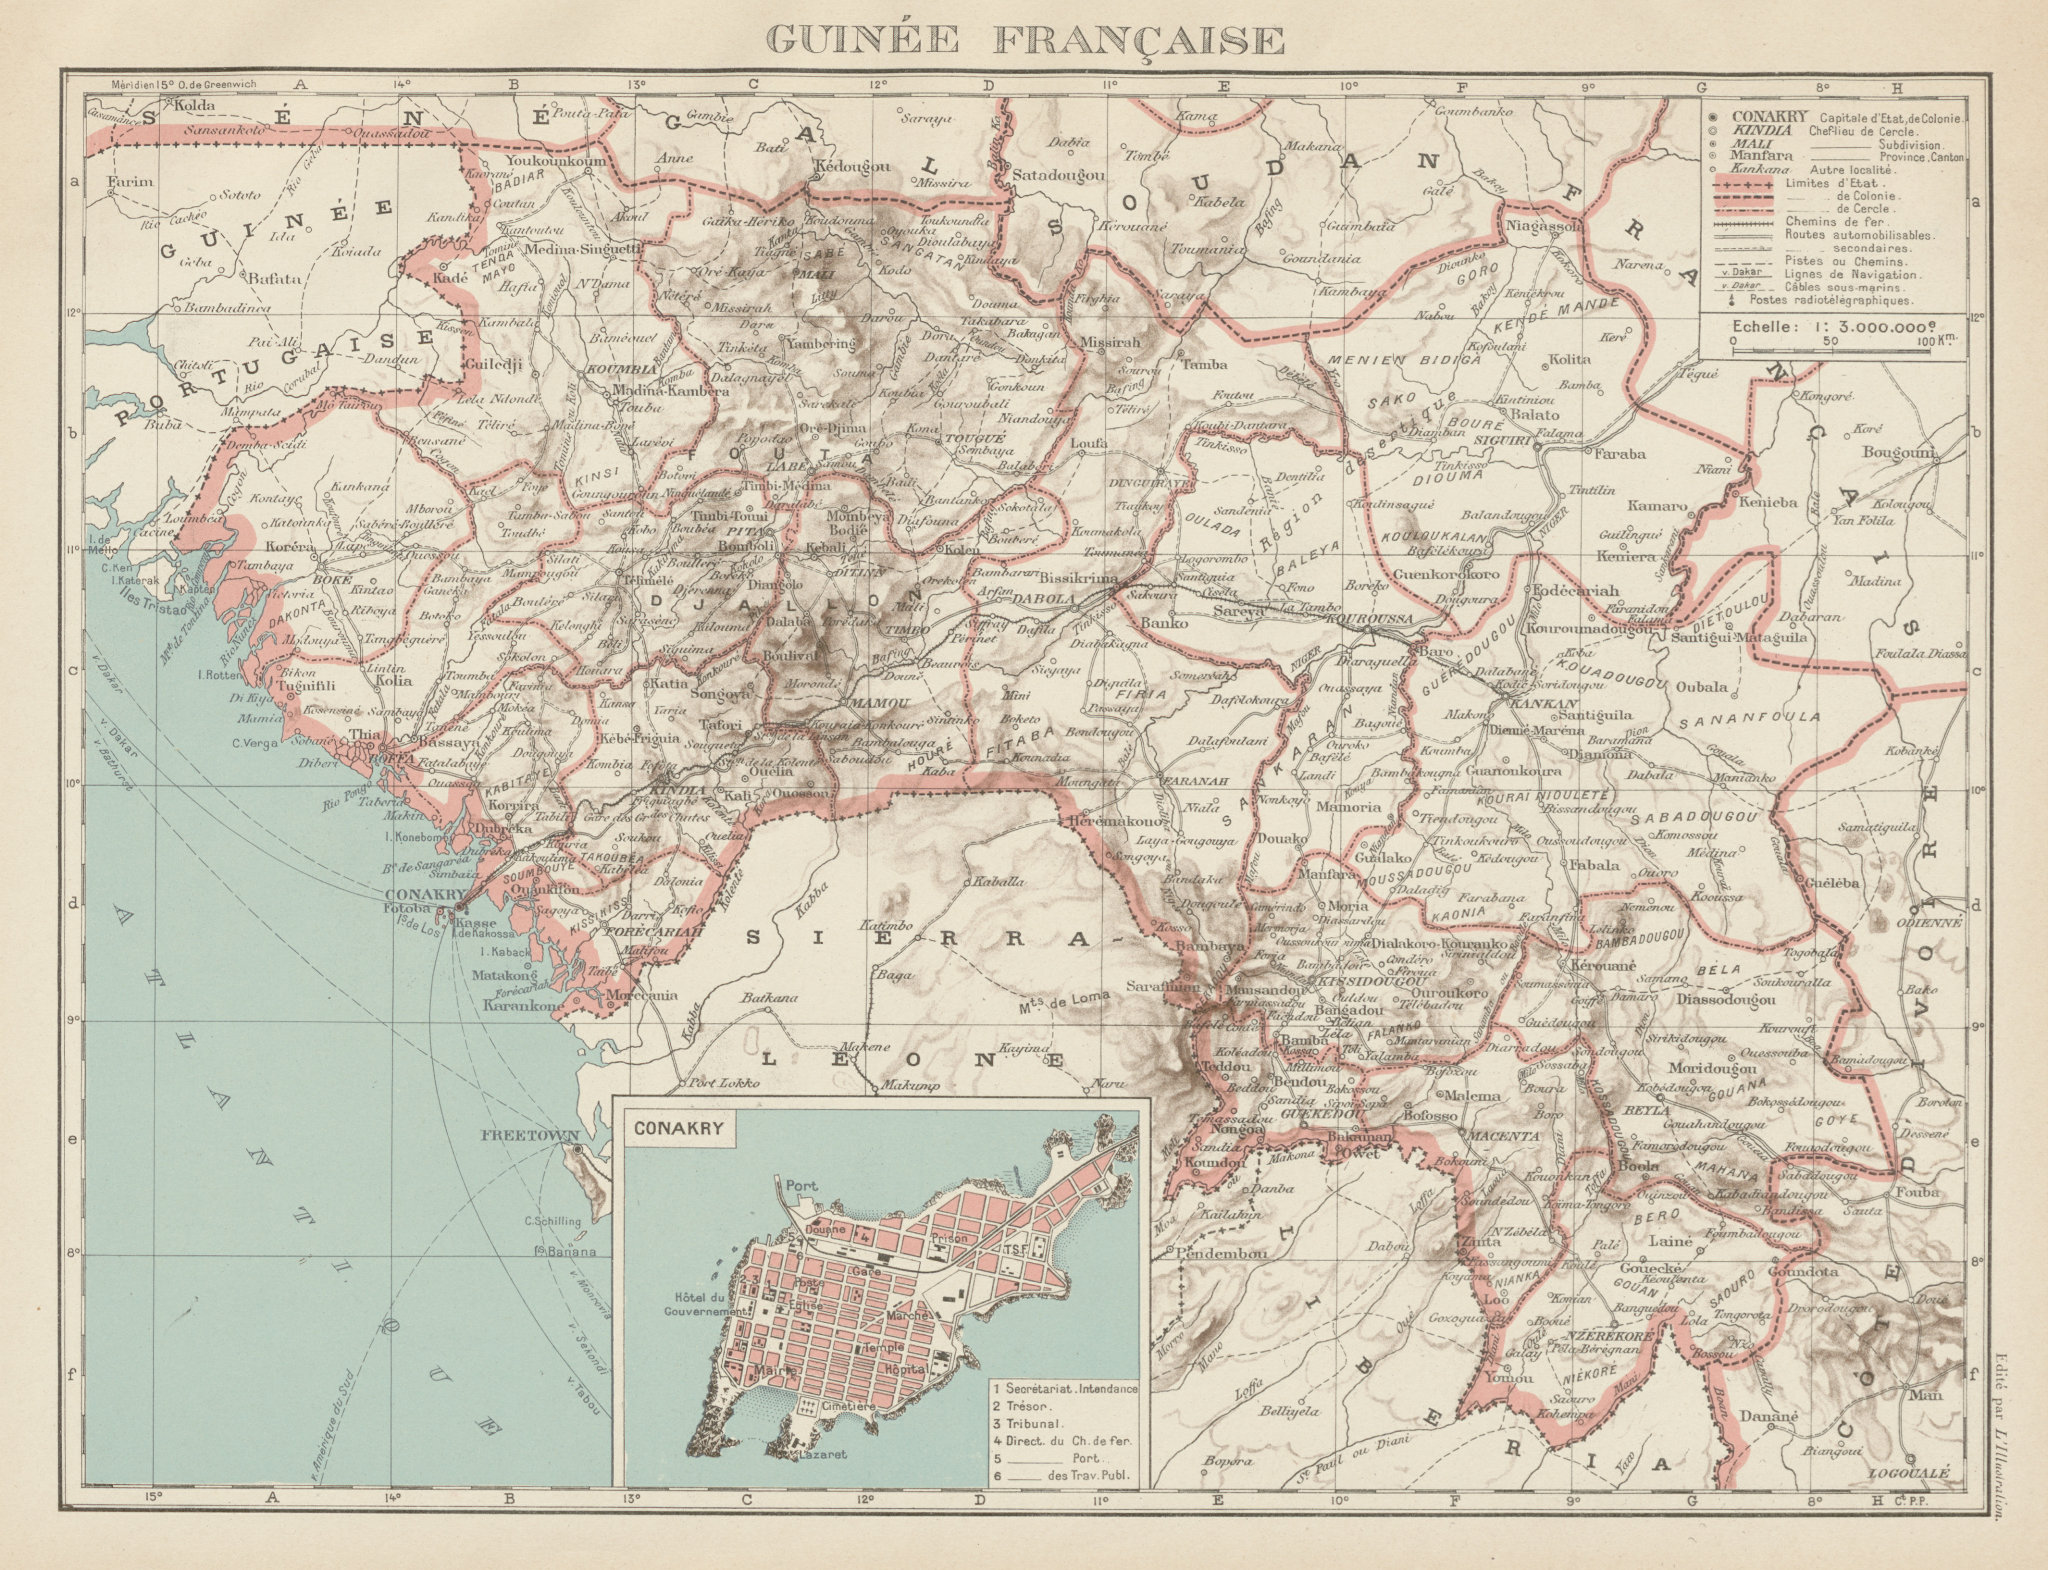 Associate Product FRENCH COLONIAL GUINEA. Guinee Française. Conakry city town ville plan 1929 map